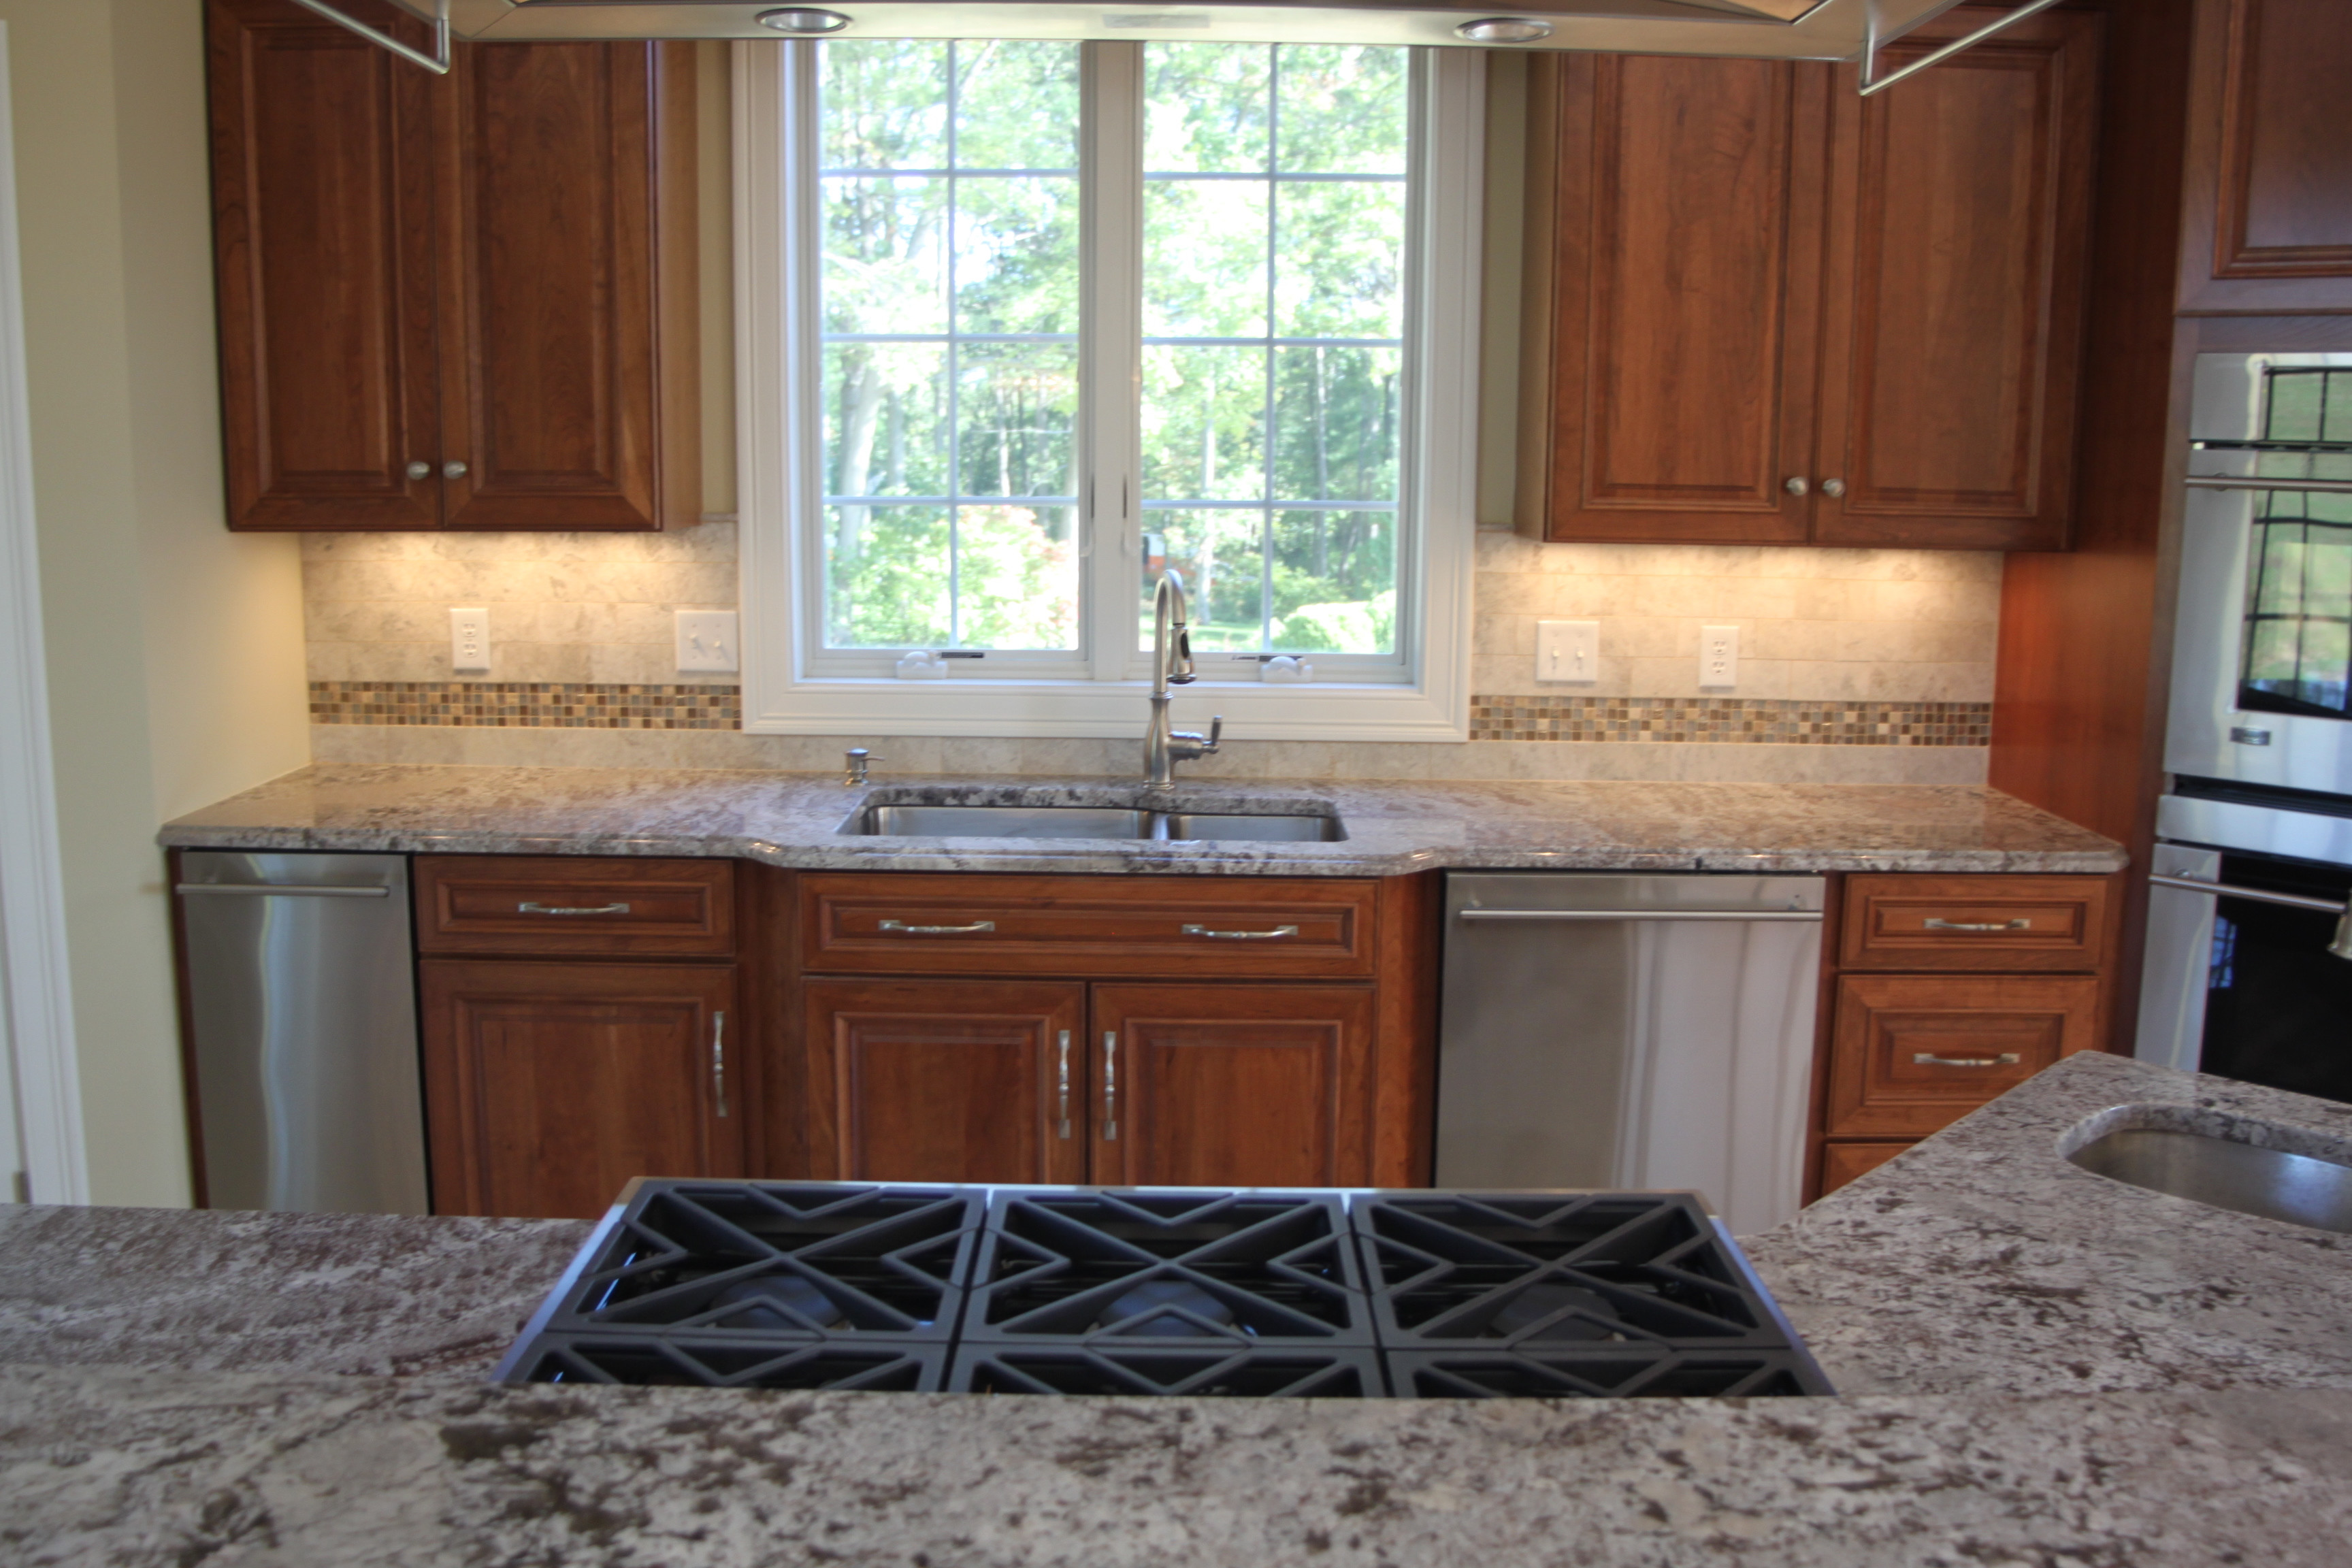 hickory hardwood flooring in kitchen of should your flooring match your kitchen cabinets or countertops in should your flooring match your kitchen cabinets or countertops